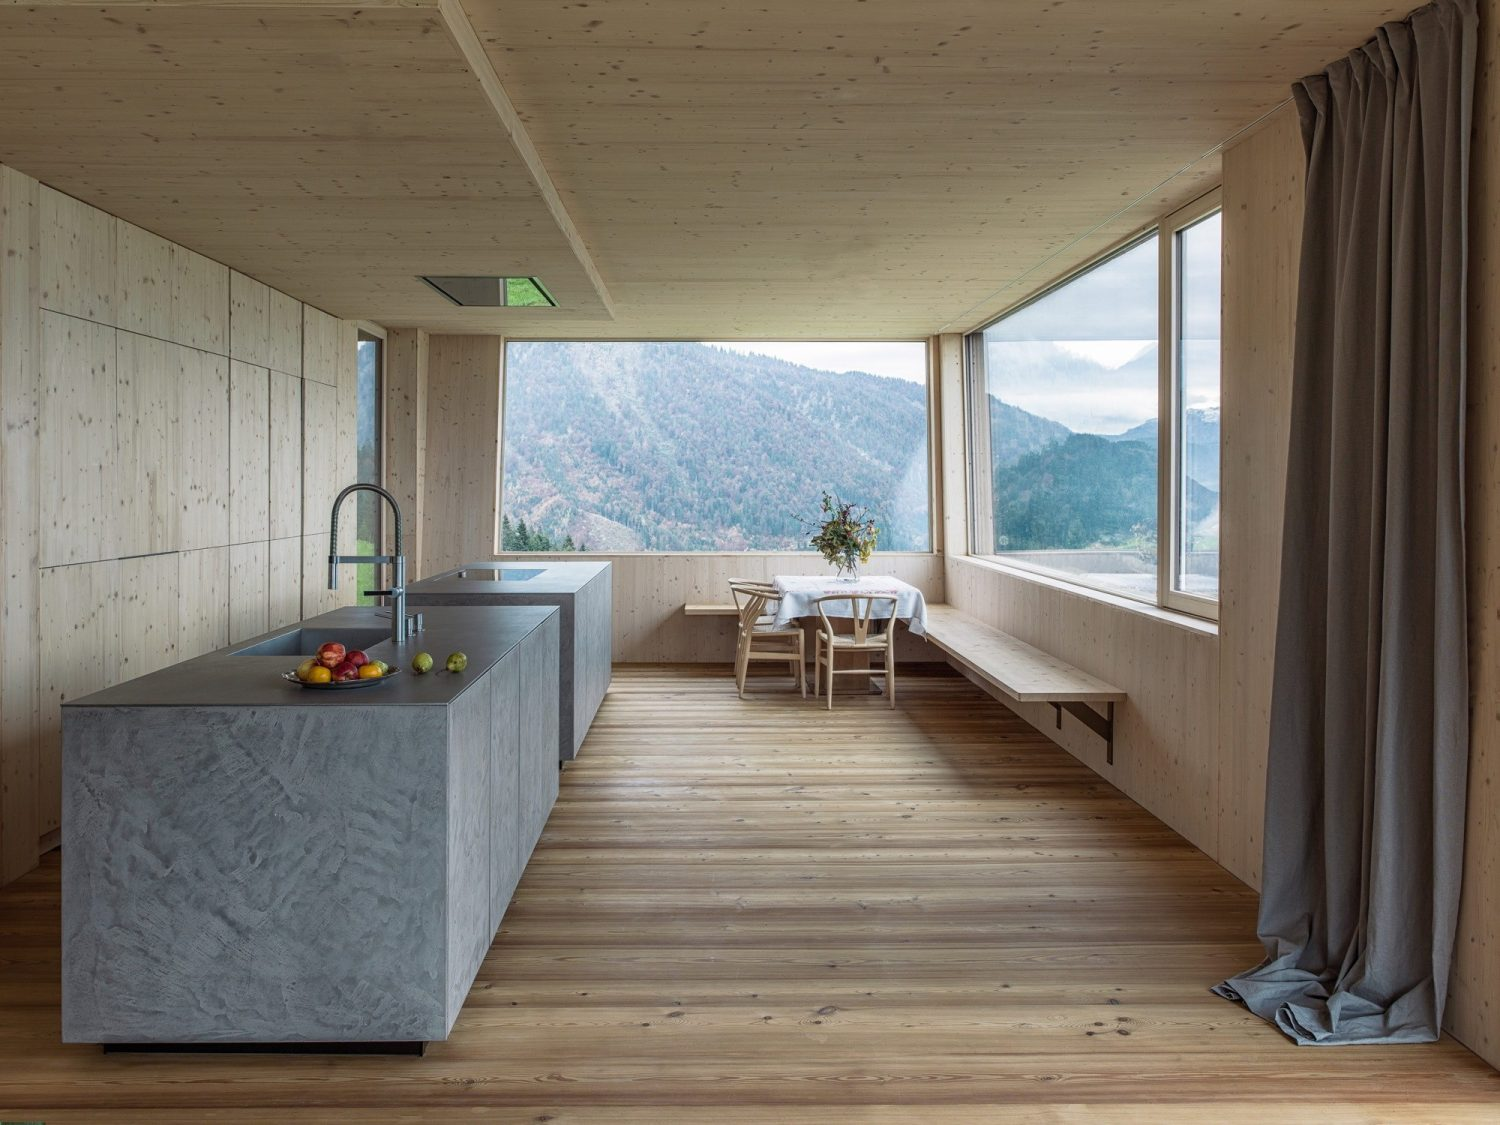 Leierhof – House in the Alps by Maximilian Eisenköck Architecture